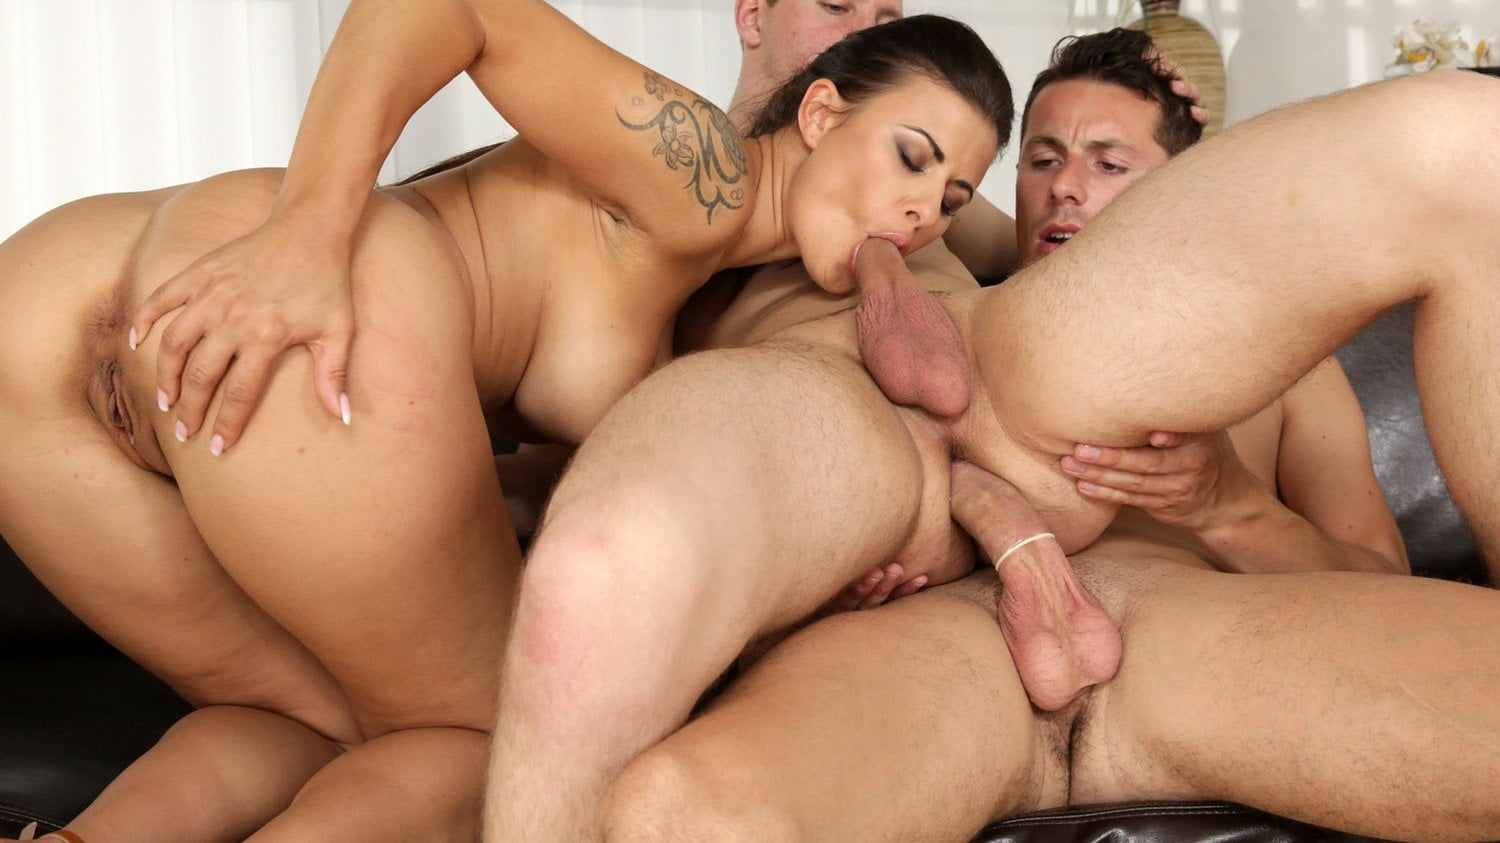 Hq cumshot gallery barley legal pictures